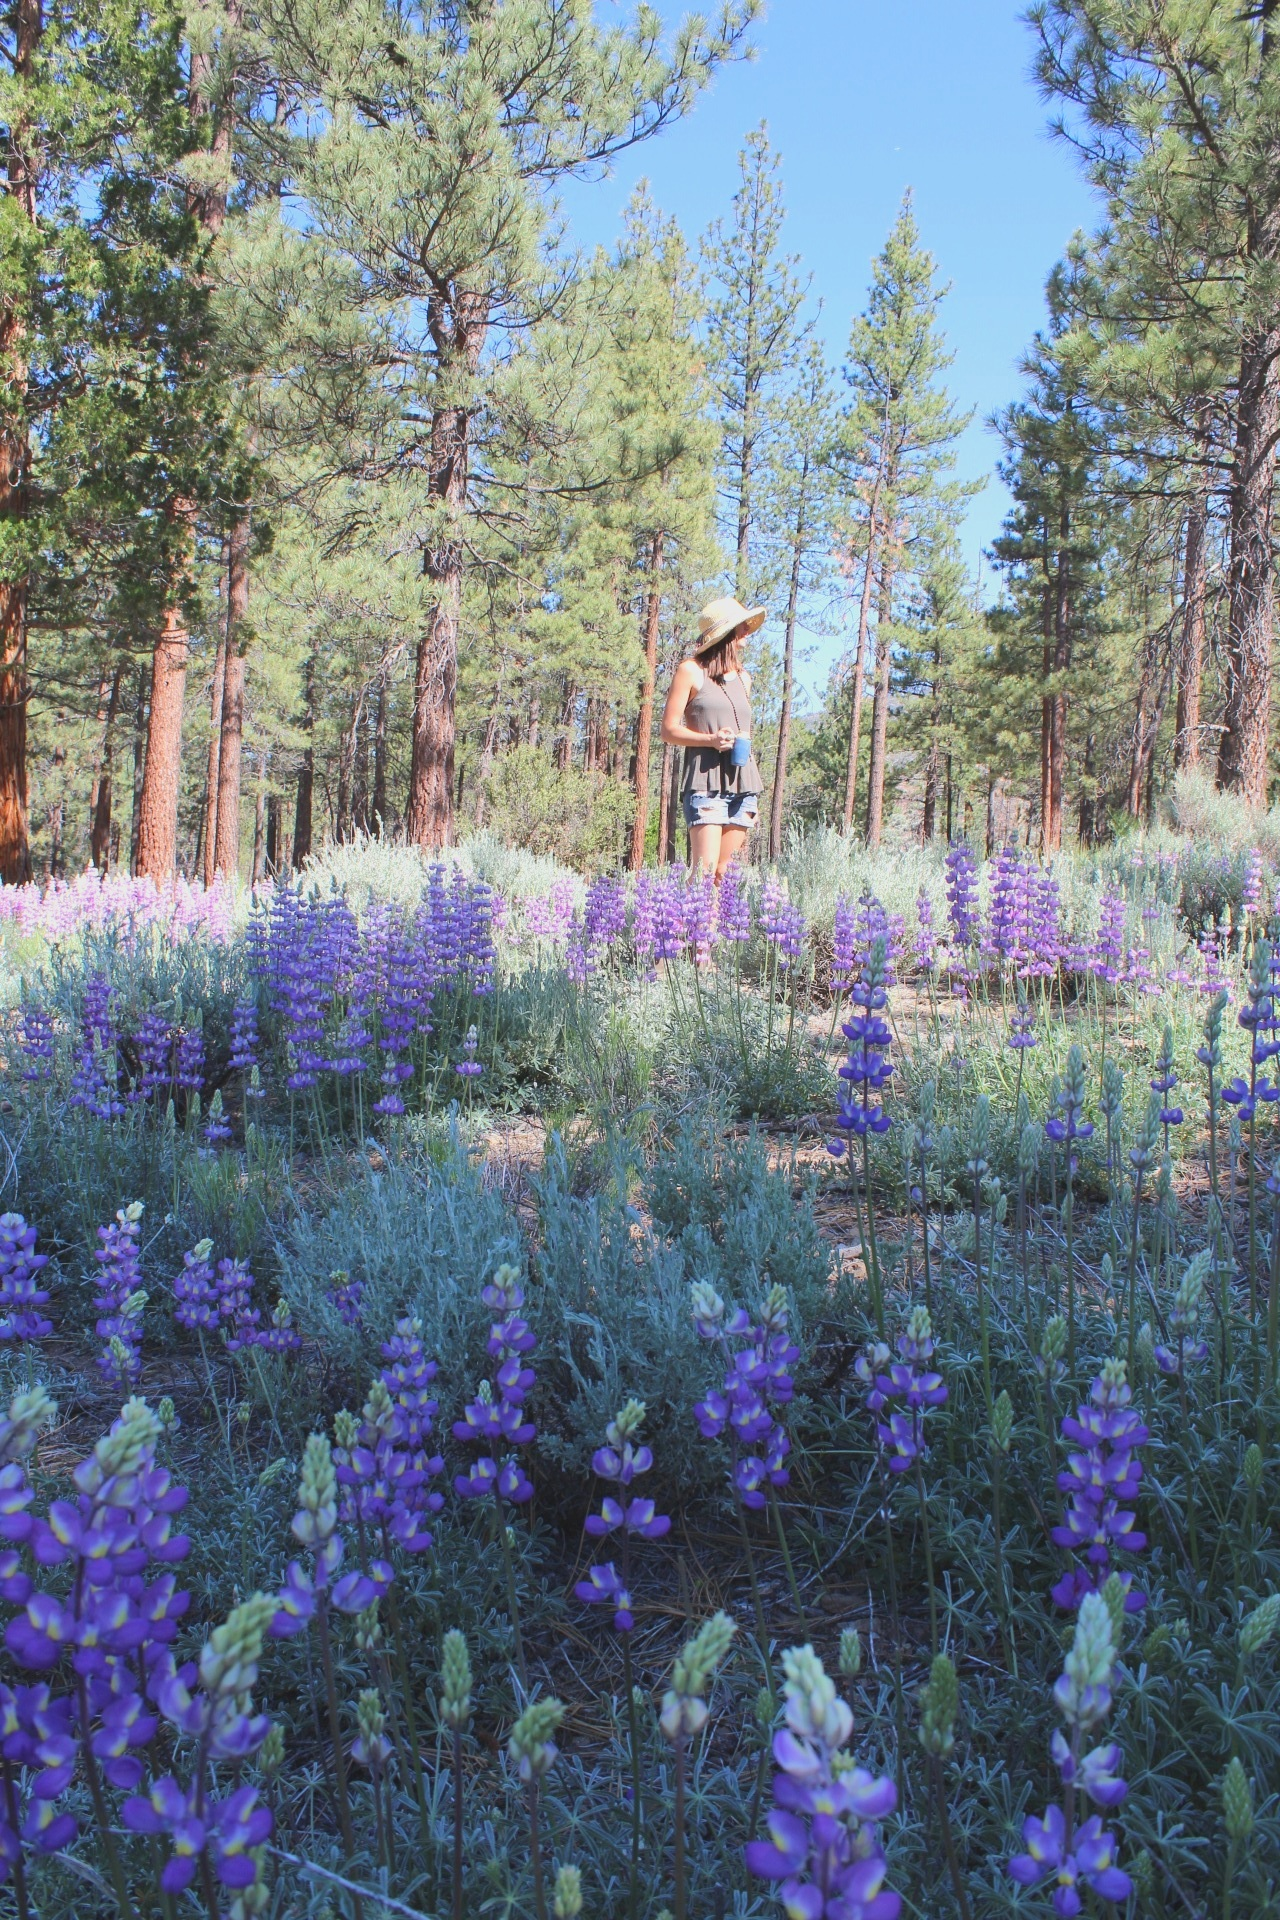 Wildflowers+of+California+~+Sea+of+Lupines++~+ALL+GOODS+FROM+THE+WOODS